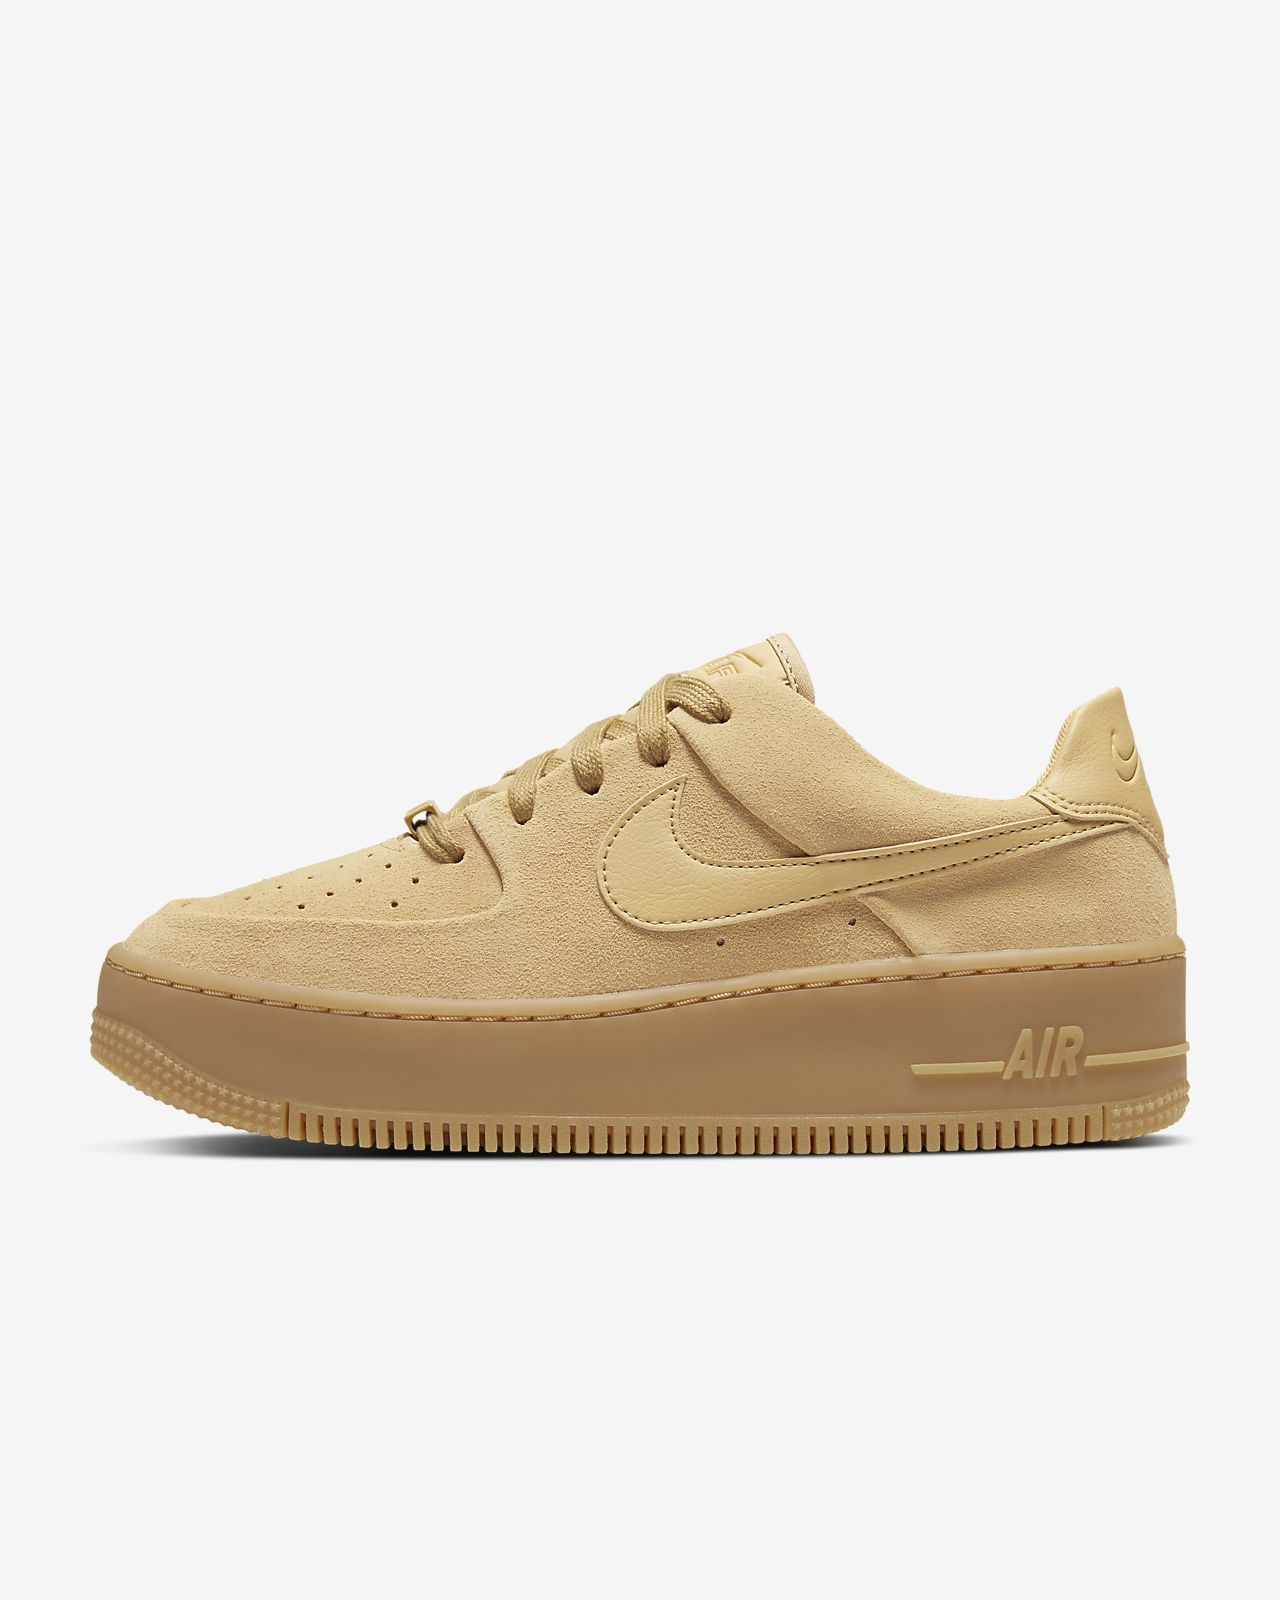 Chaussure Nike pour 1 Femme Sage Air Force Low srhQdCtx